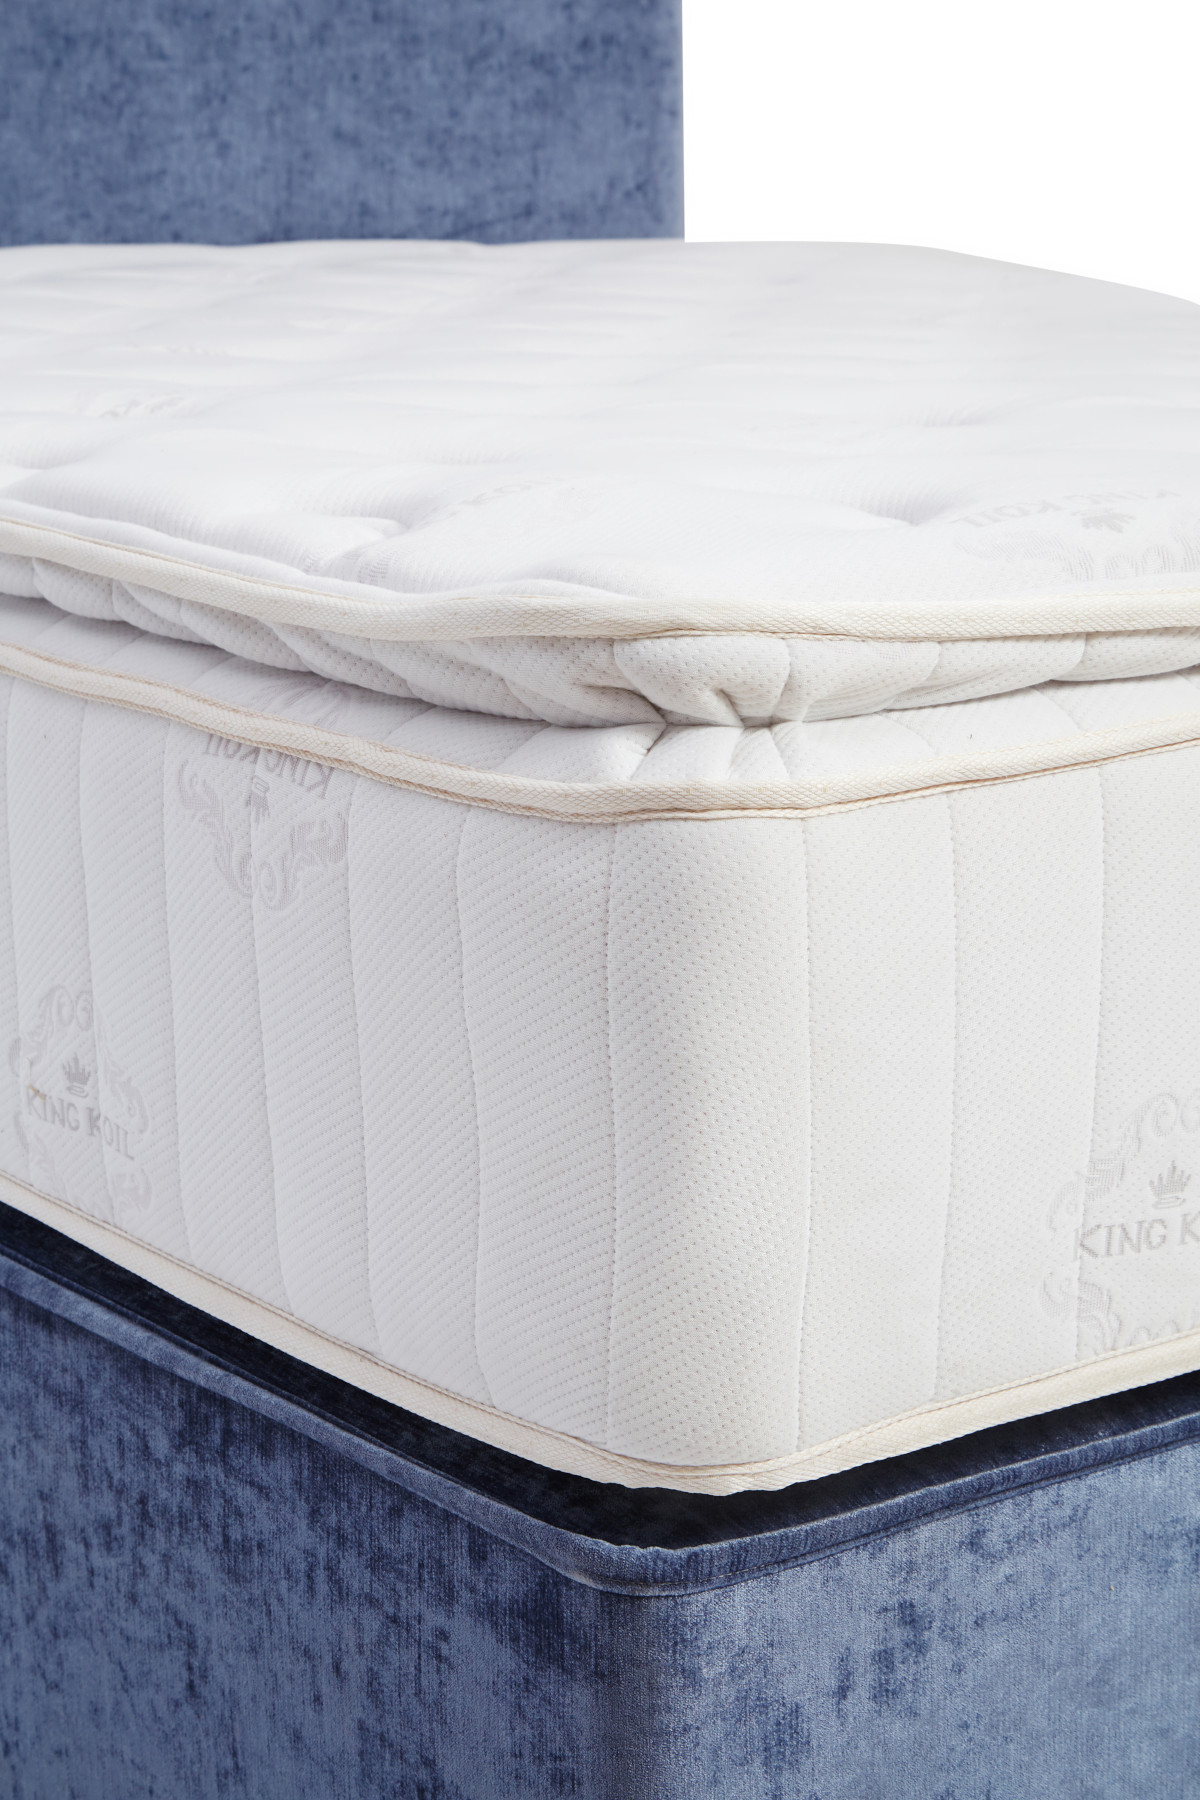 King Koil 5 Star Hotel Mattress & Divan